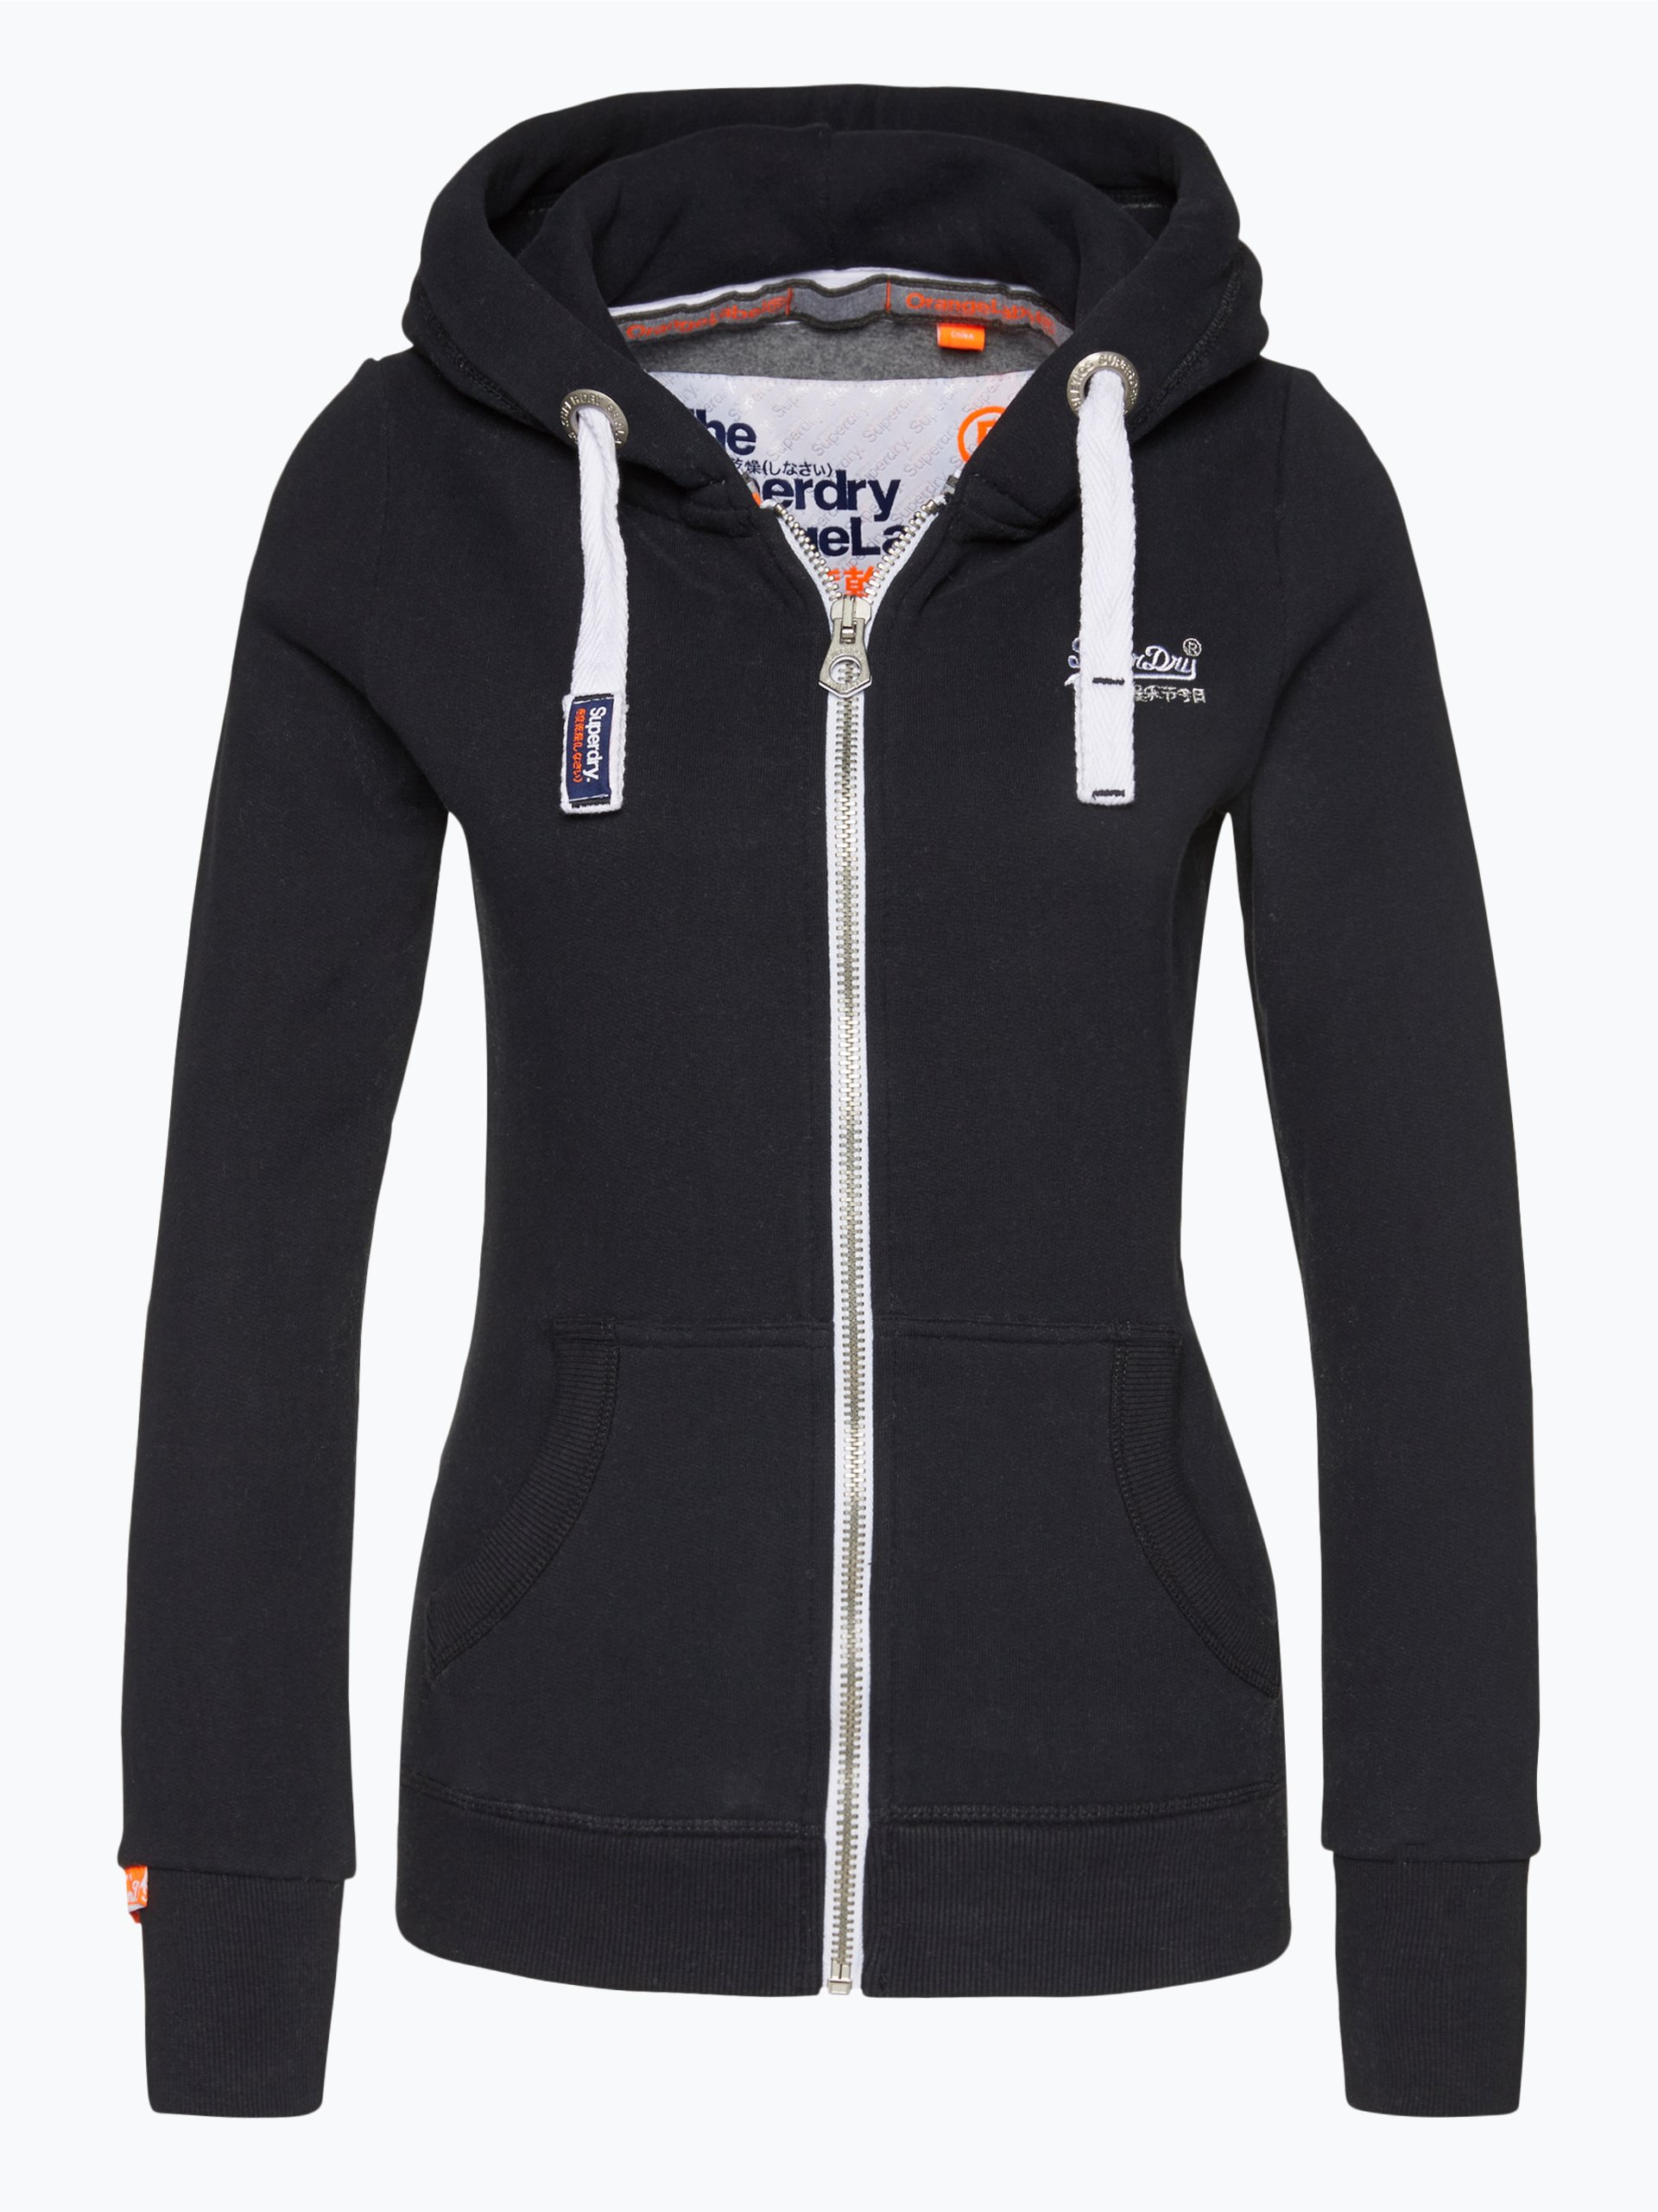 superdry damen sweatjacke marine uni online kaufen. Black Bedroom Furniture Sets. Home Design Ideas